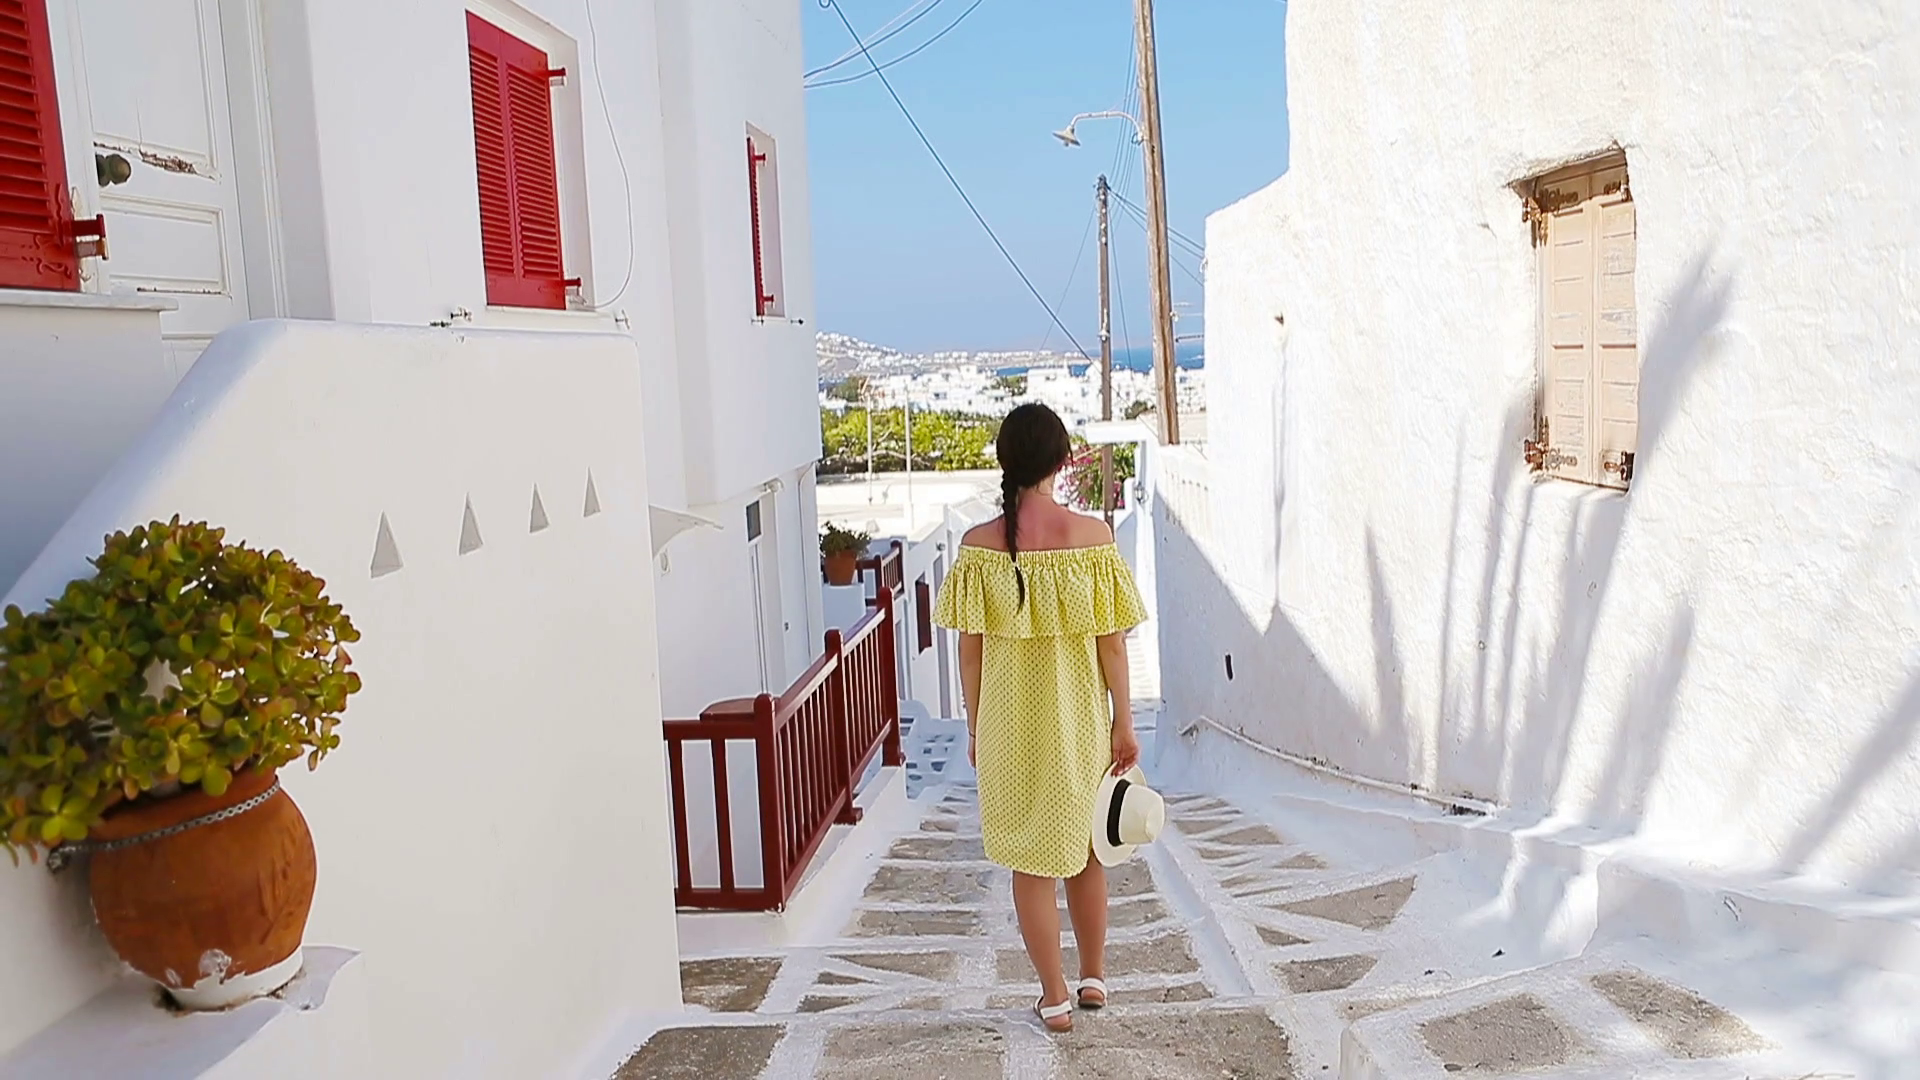 Beautiful woman outdoors in old streets an Mykonos Girl at street 1920x1080